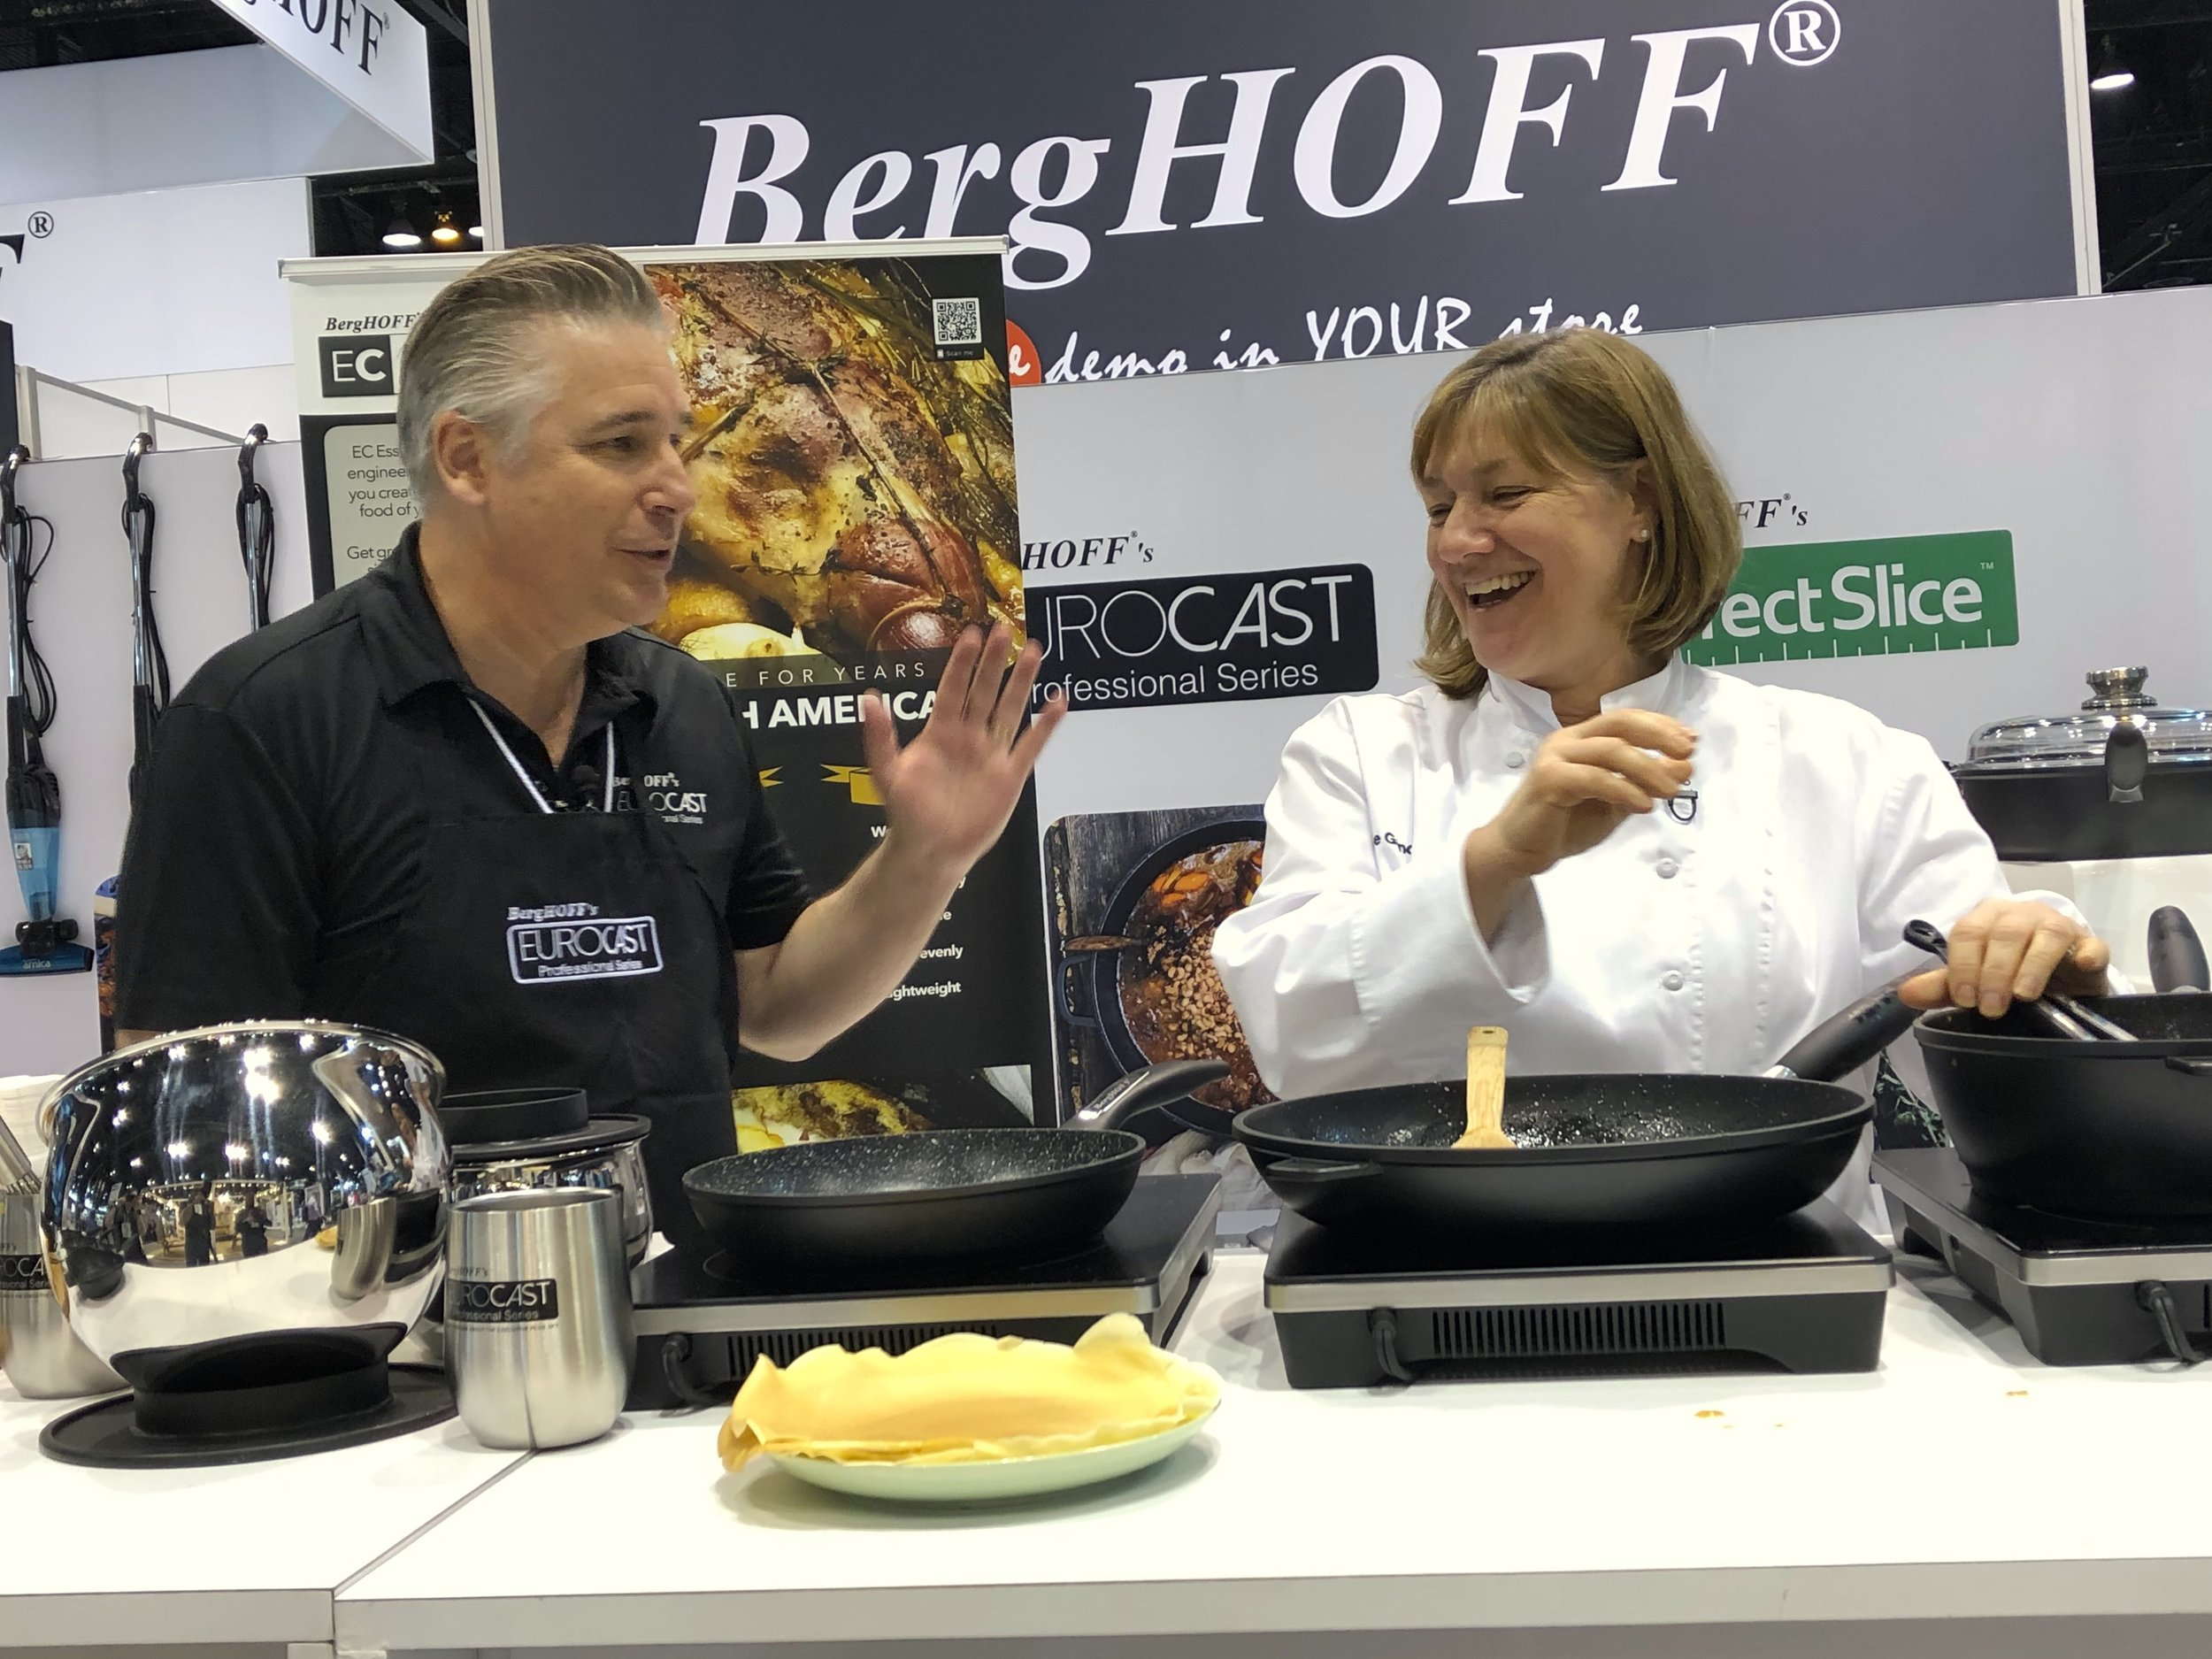 EVP of EuroCAST, Jay Laisné, demonstrating EuroCAST Cookware's Professional series and its newest ECEssentials line at IHA in Chicago, with celebrity chef Gale Gand, March 2019.